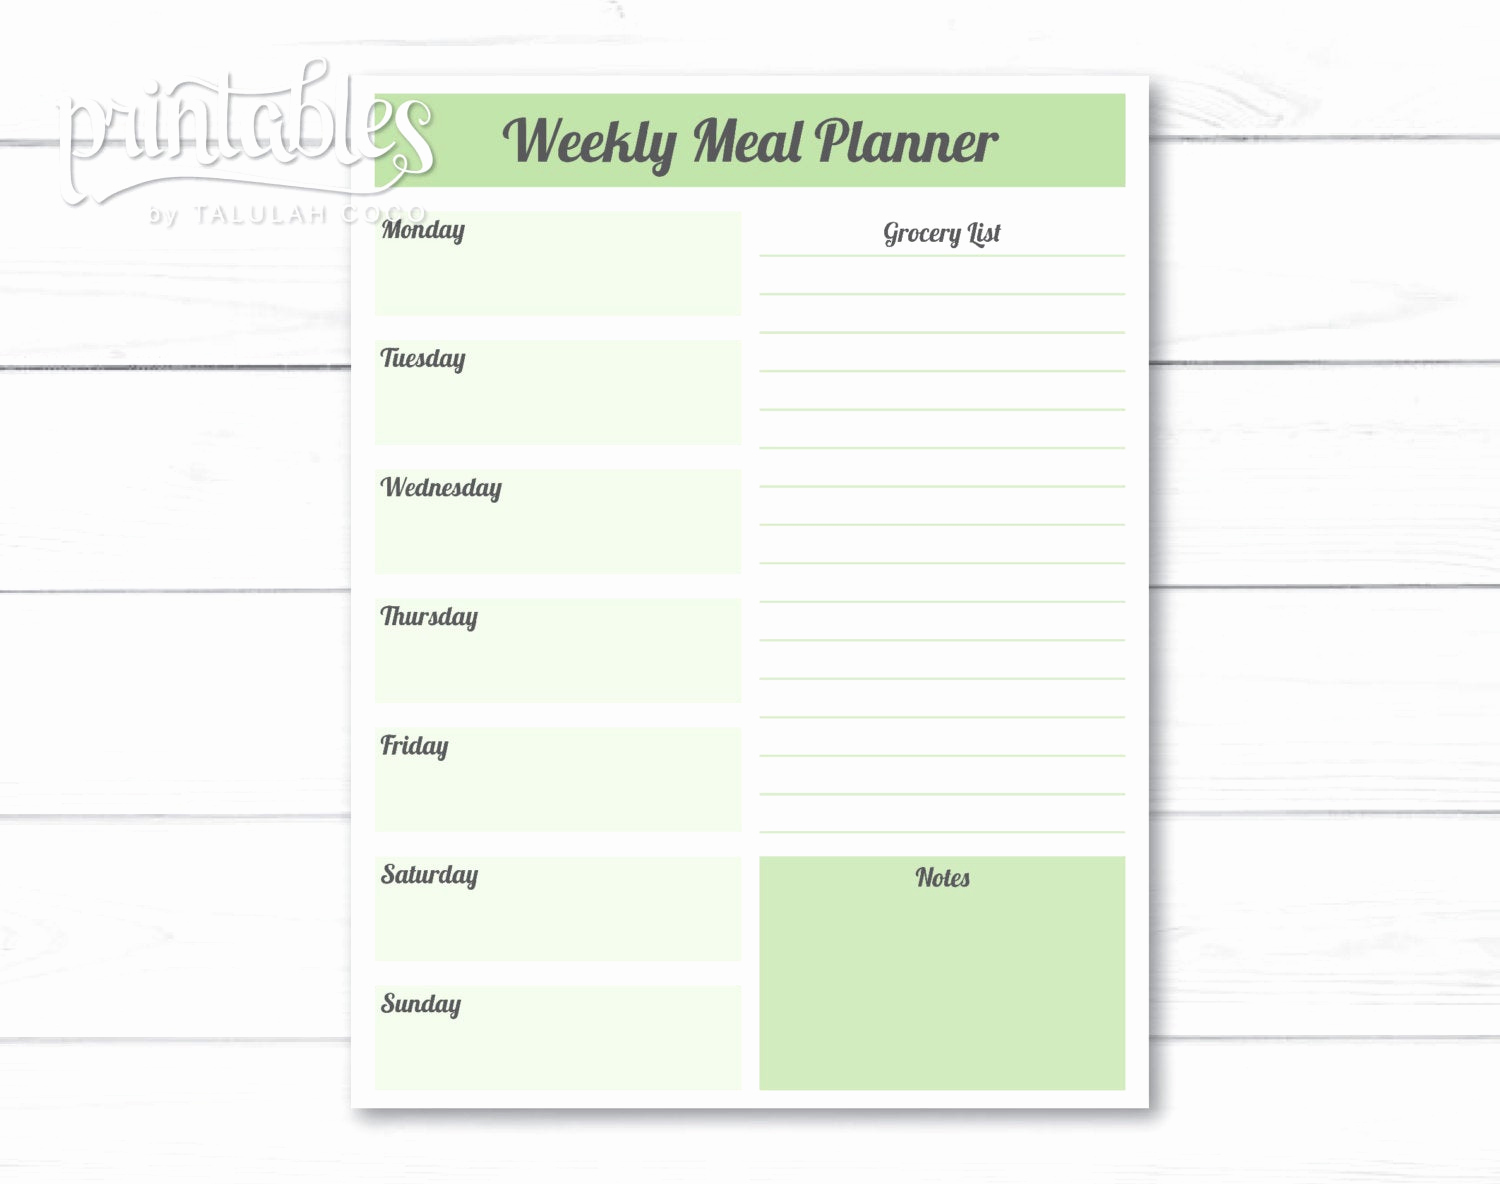 Weekly Meal Plan Template Beautiful Editable Meal Planner Template Weekly Meal Planner with